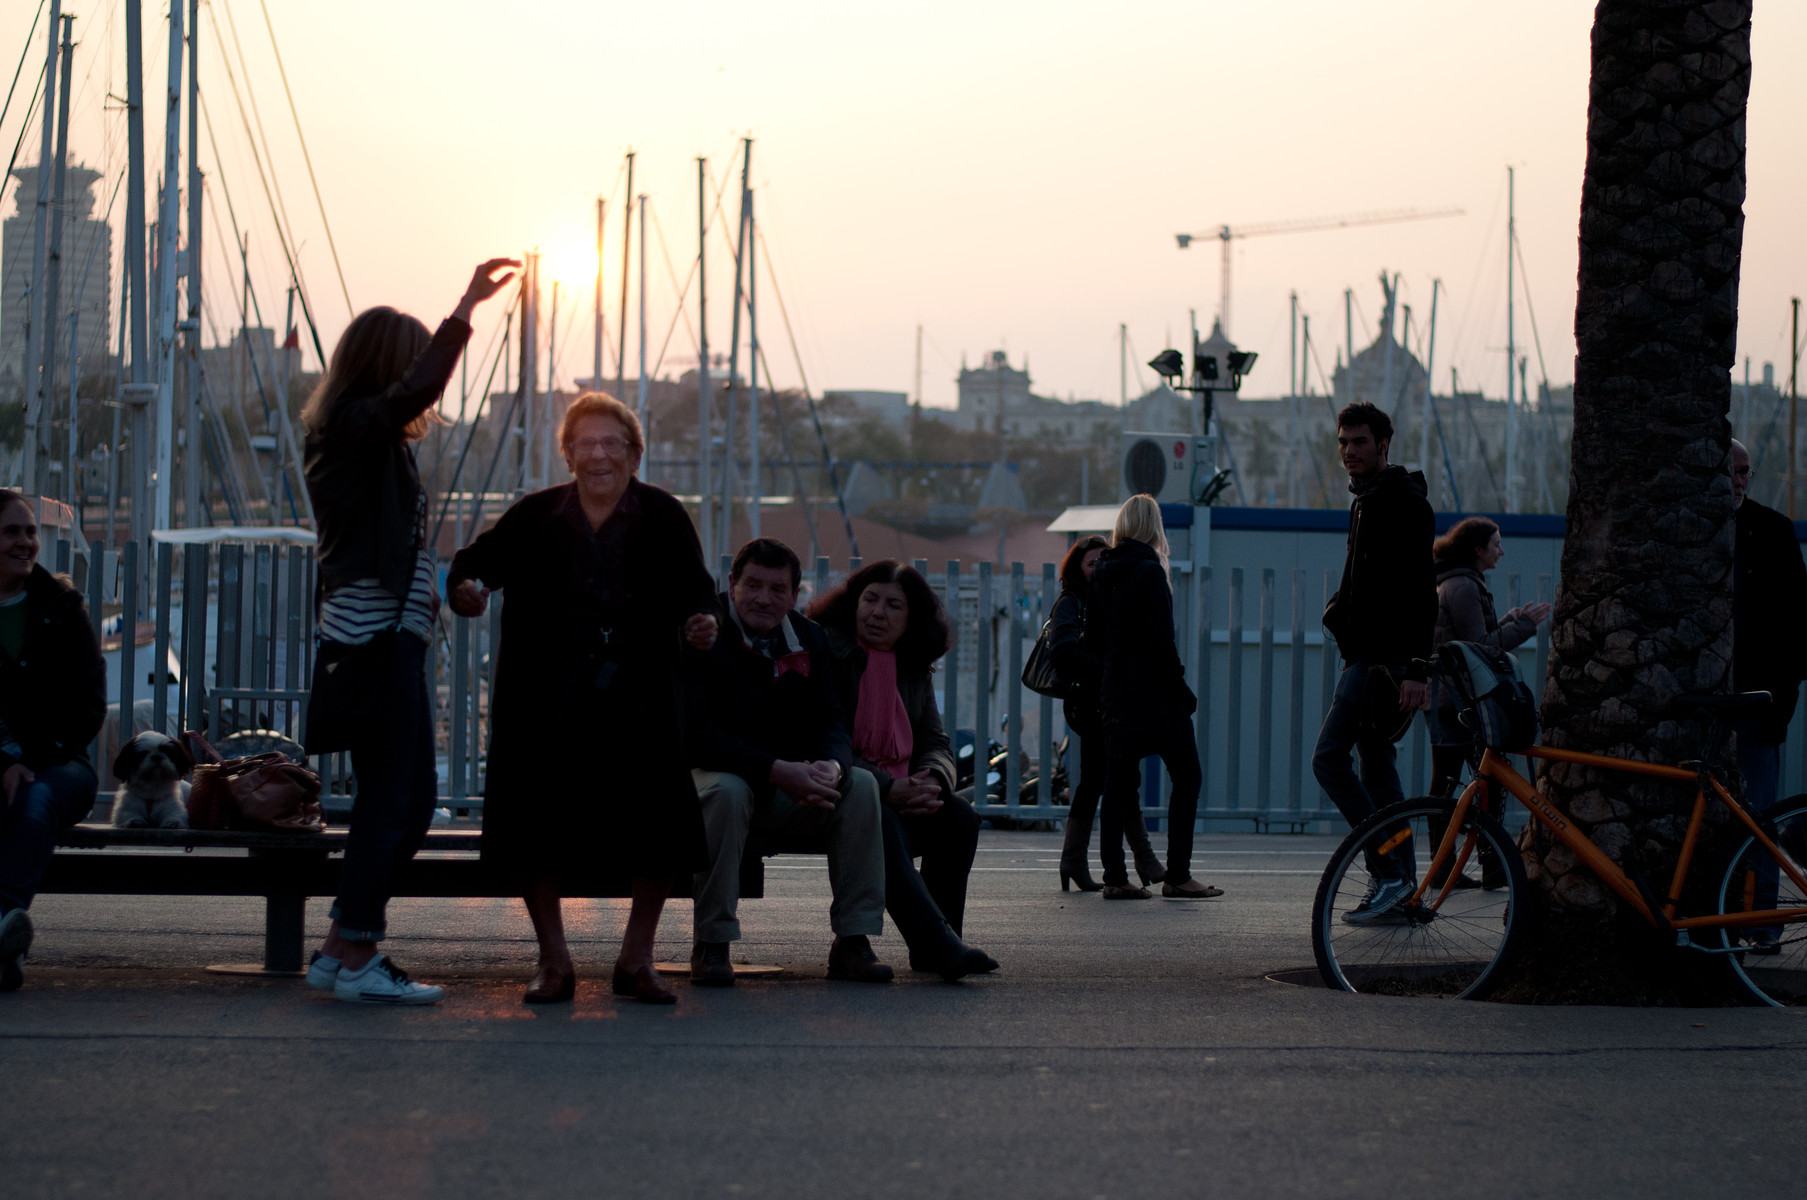 old lady dances while her daughter holds the sun above her head